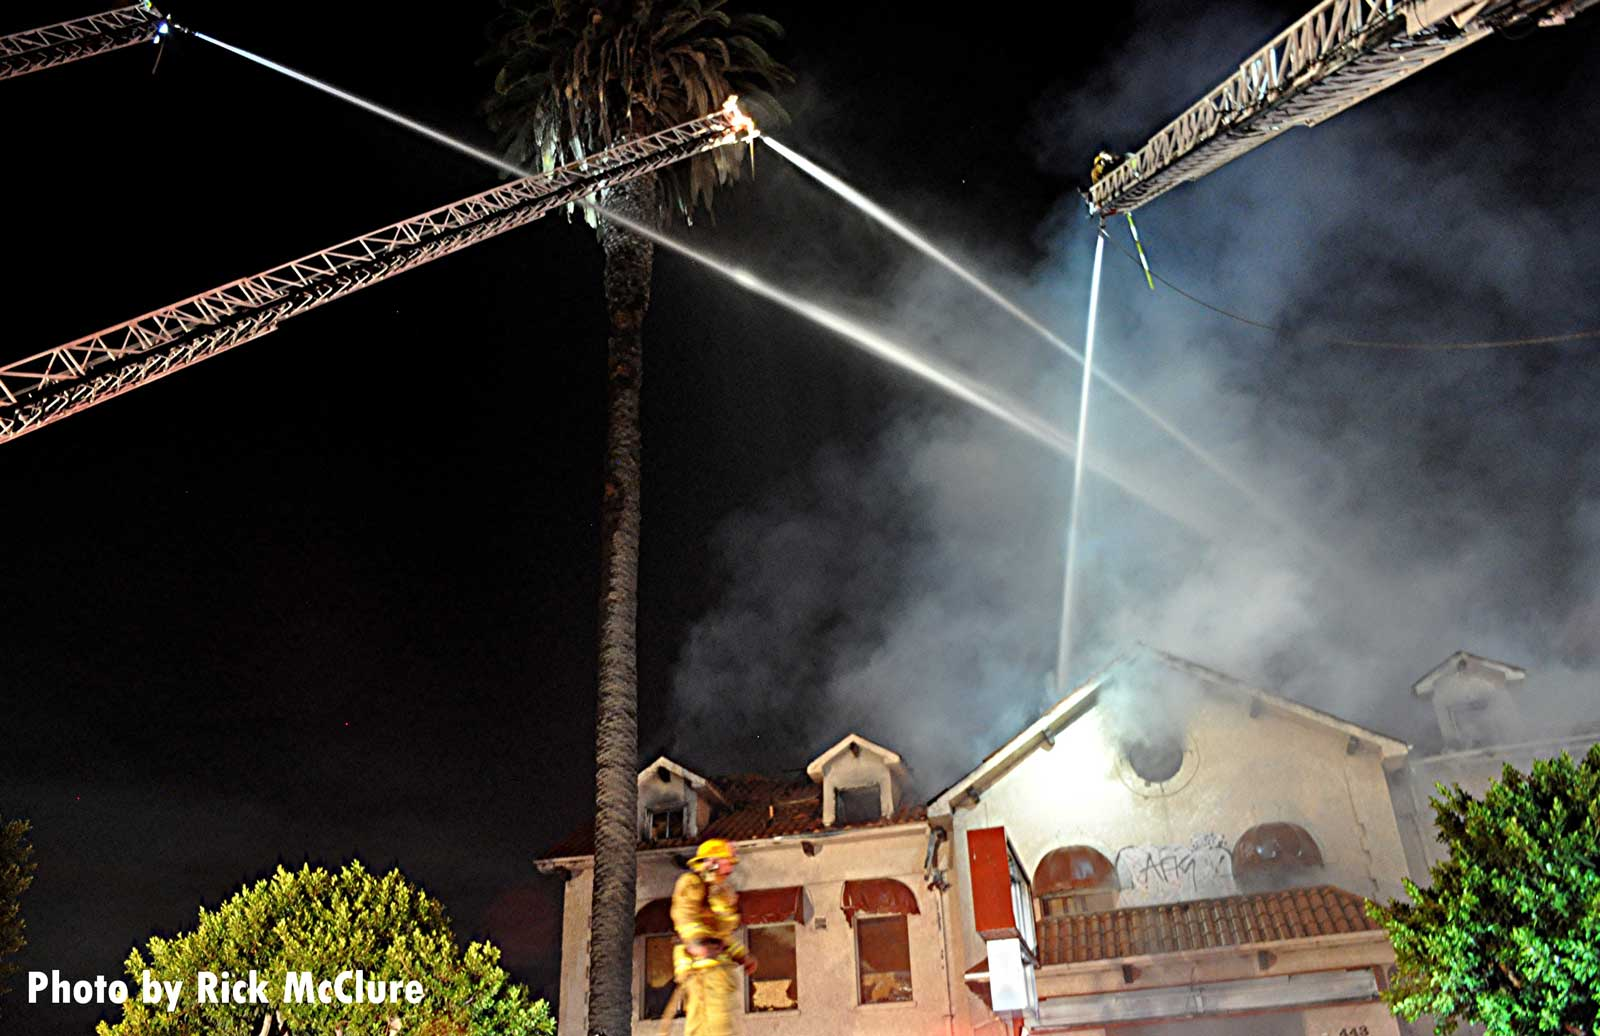 Three master streams from aerials pour water on the flames